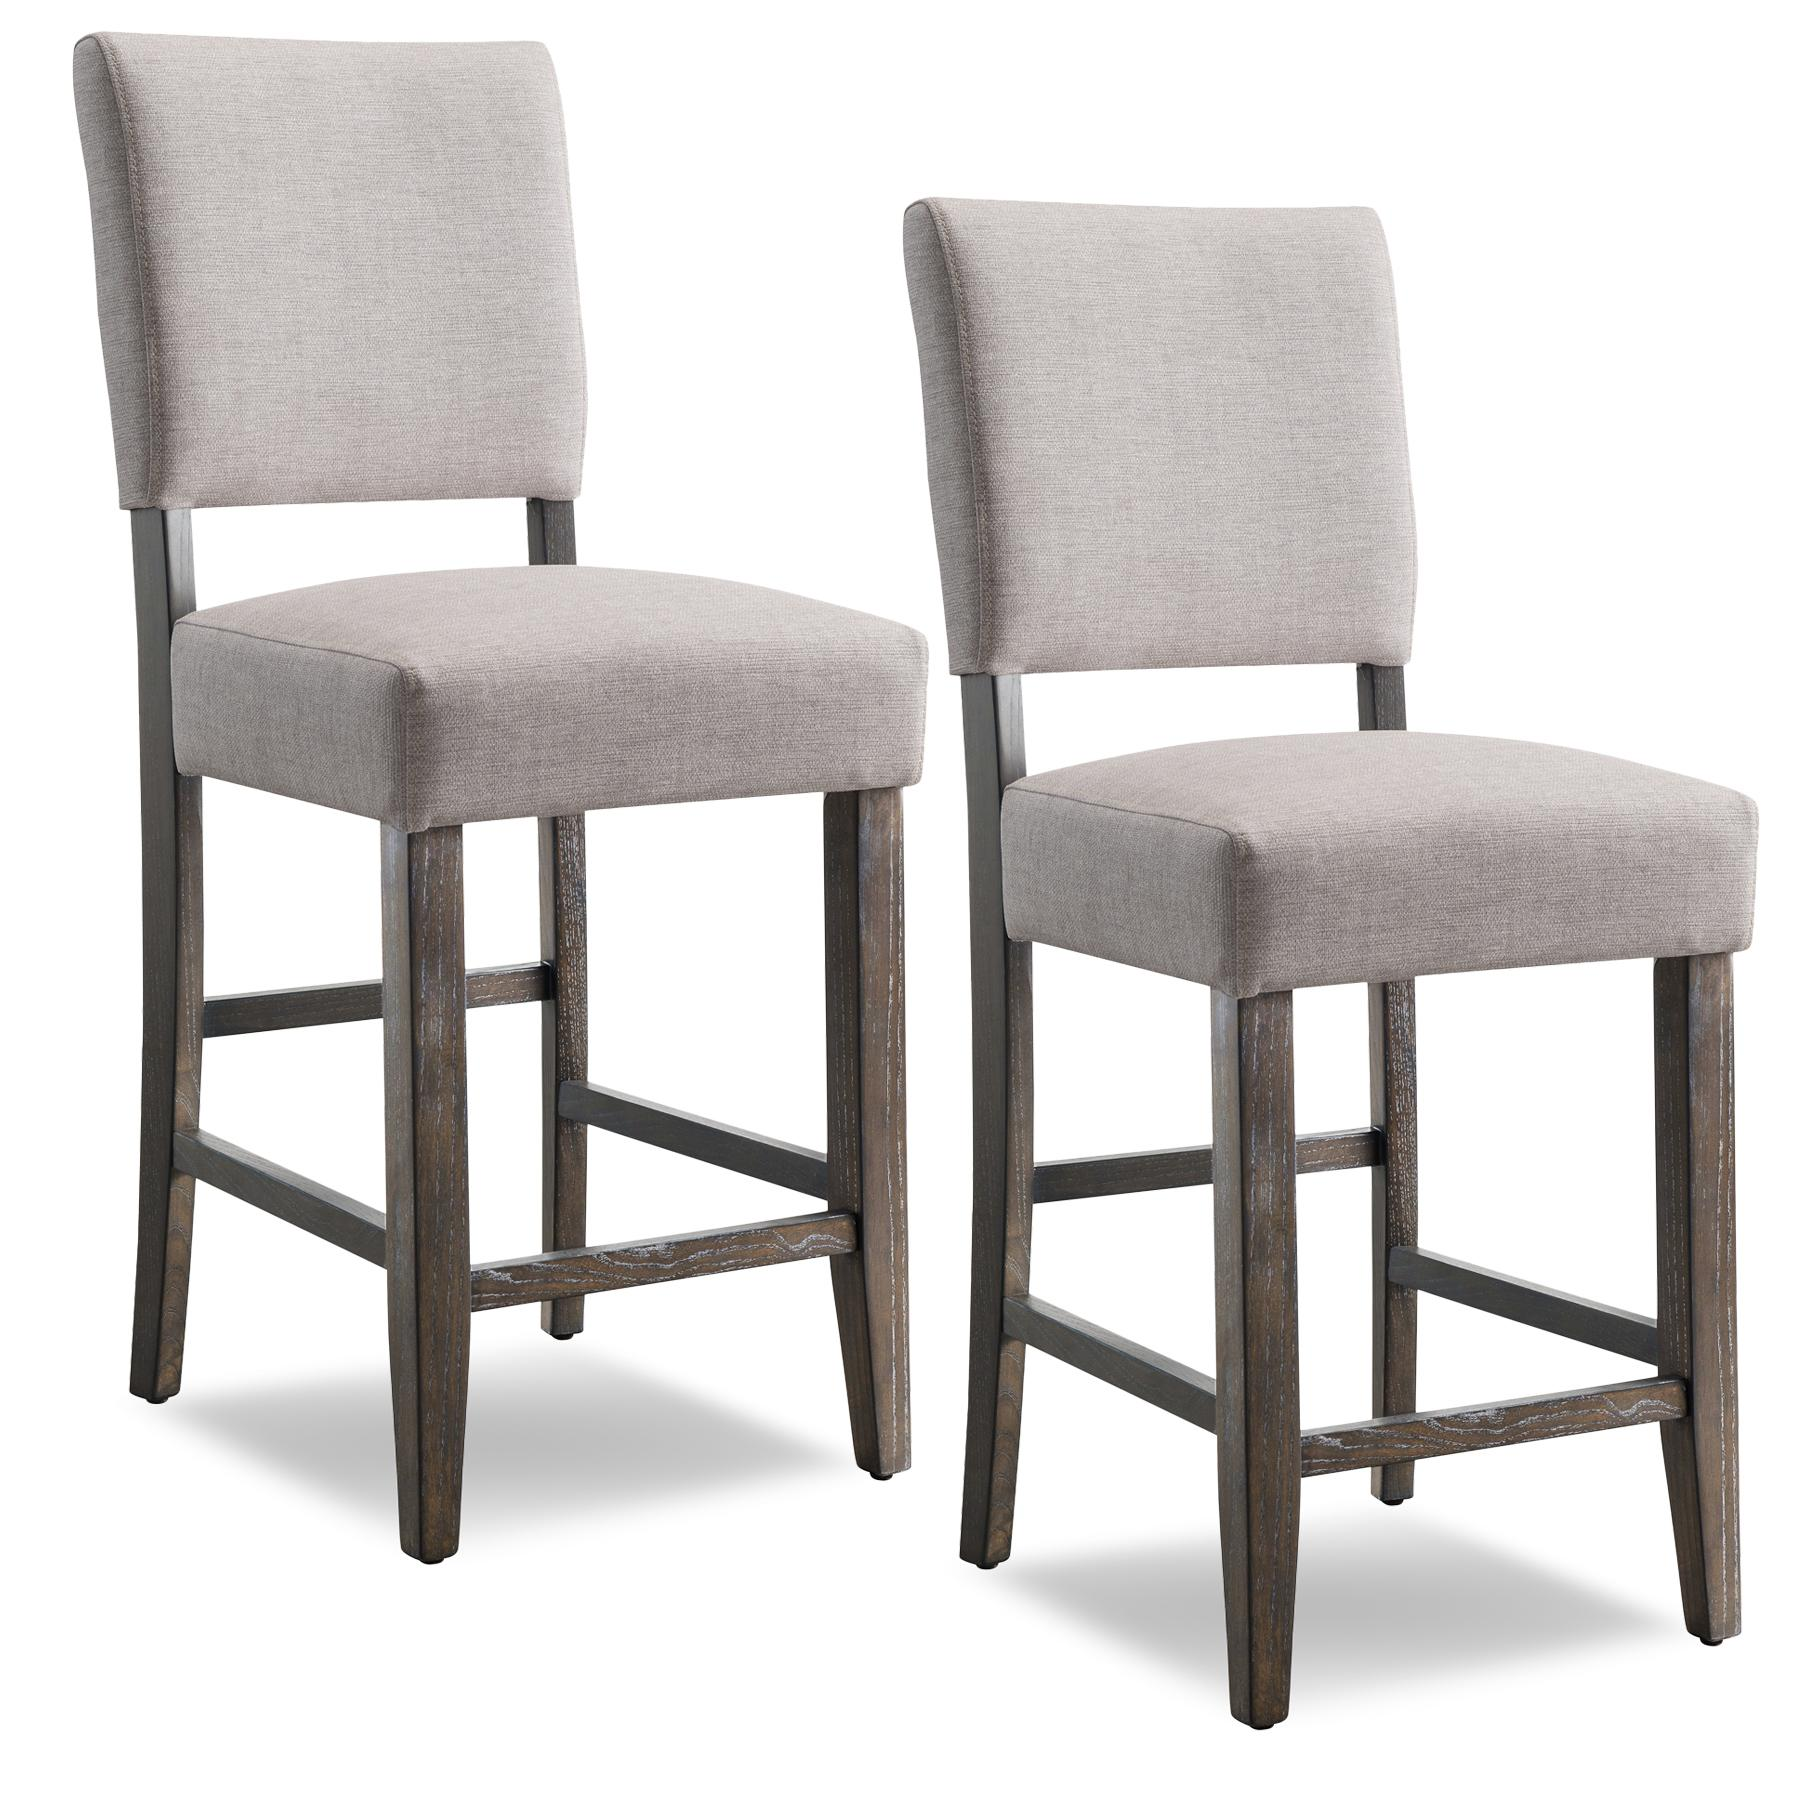 Leick 10086bb Hg Wood Upholstered Back Counter Height Barstool Heather Grey Seat Set Of 2